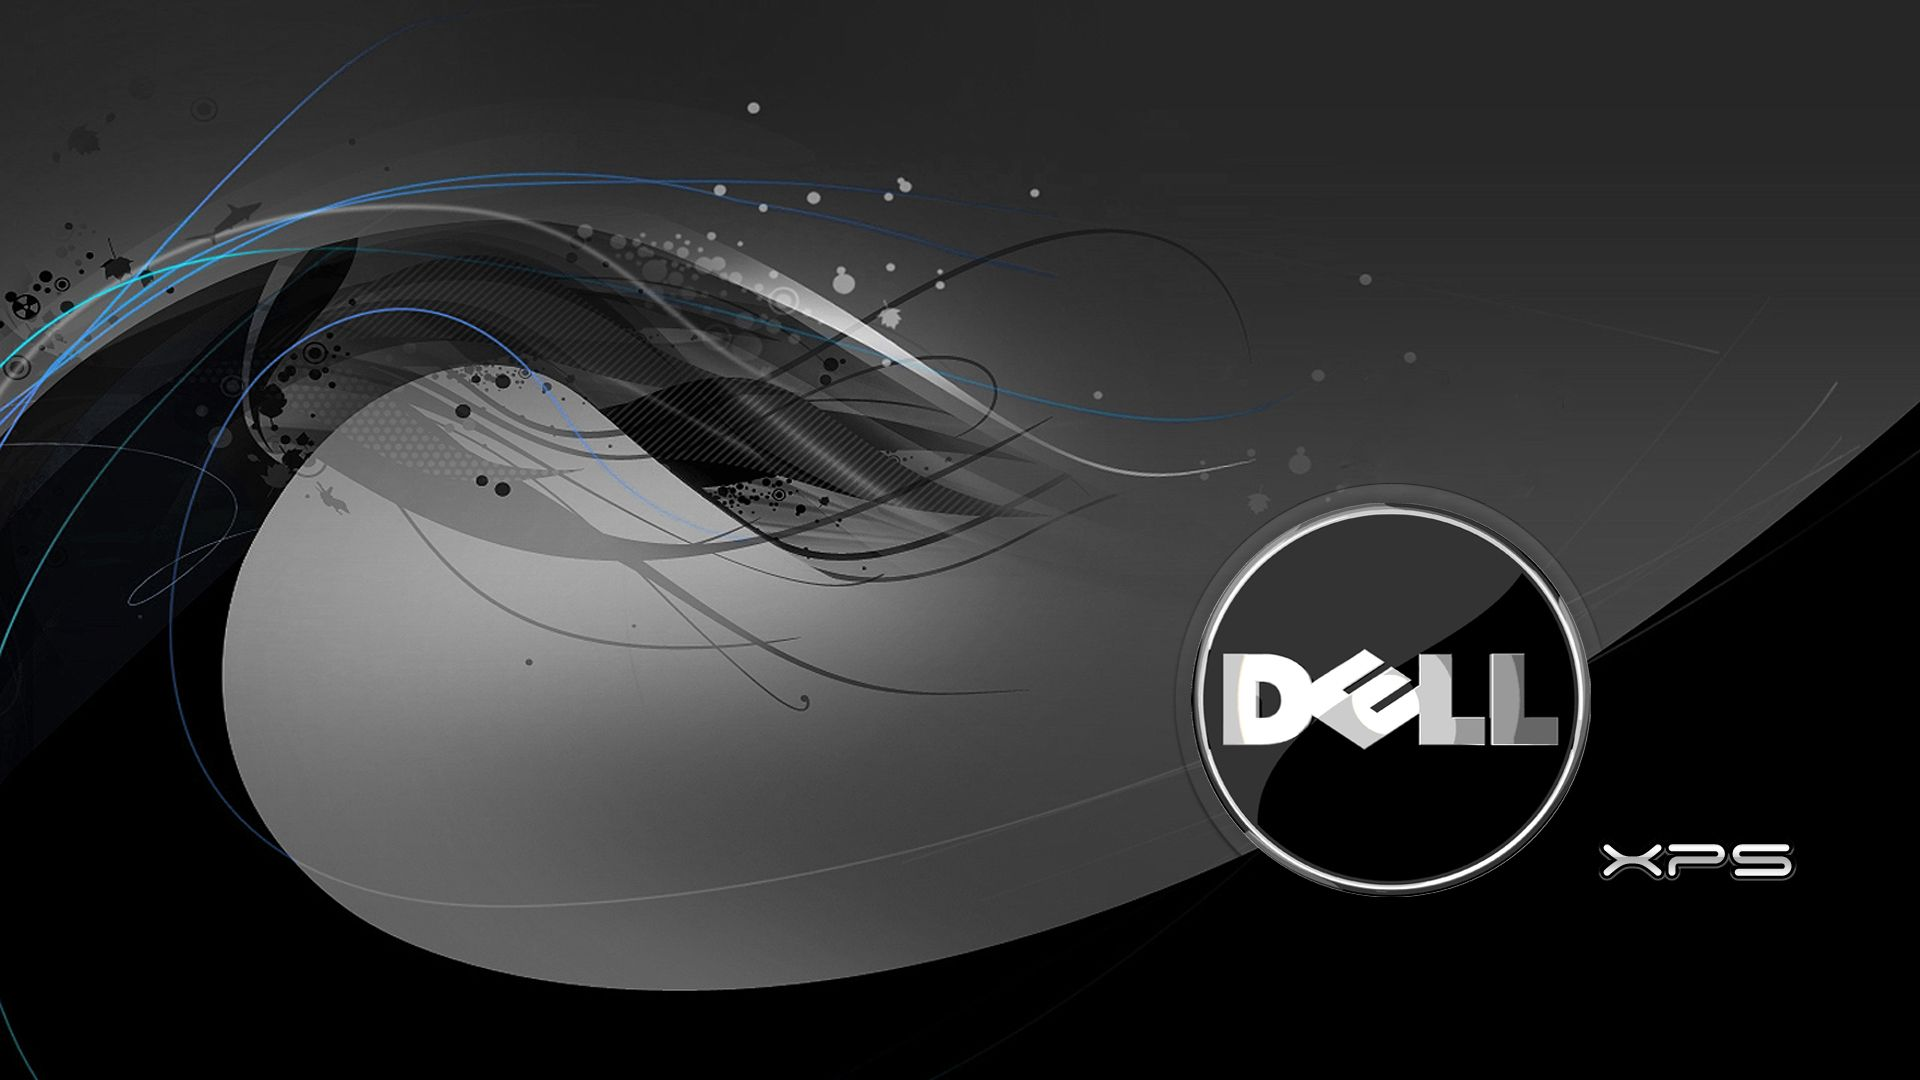 10 Latest Cool Laptop Backgrounds Space Full Hd 1920 1080: Dell Wallpapers For Free Download 1920×1080 Dell